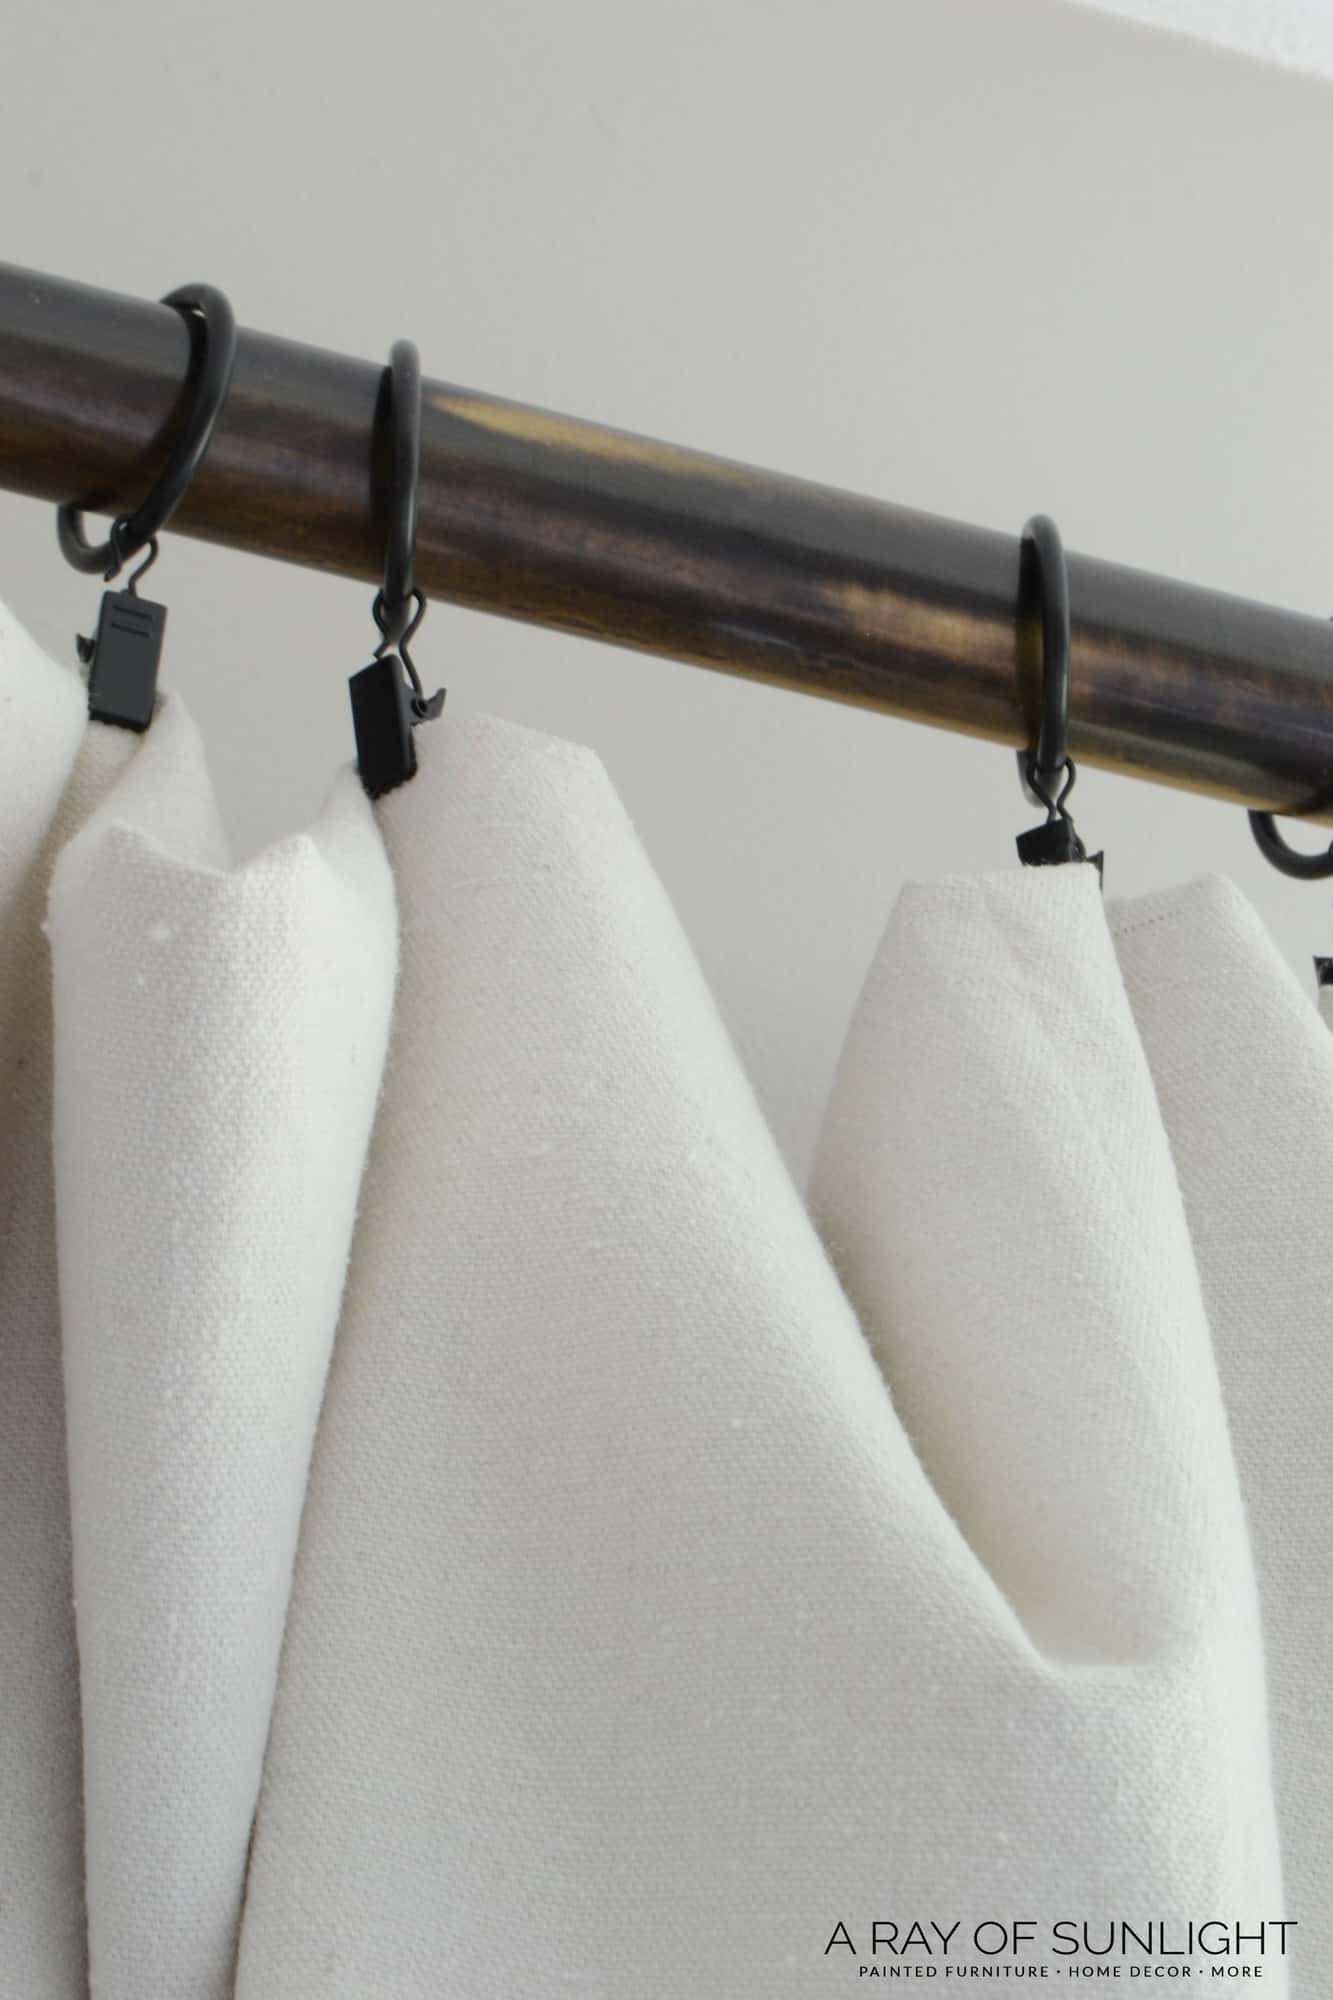 Ring Clips Hang Drop Cloth Curtains Easily